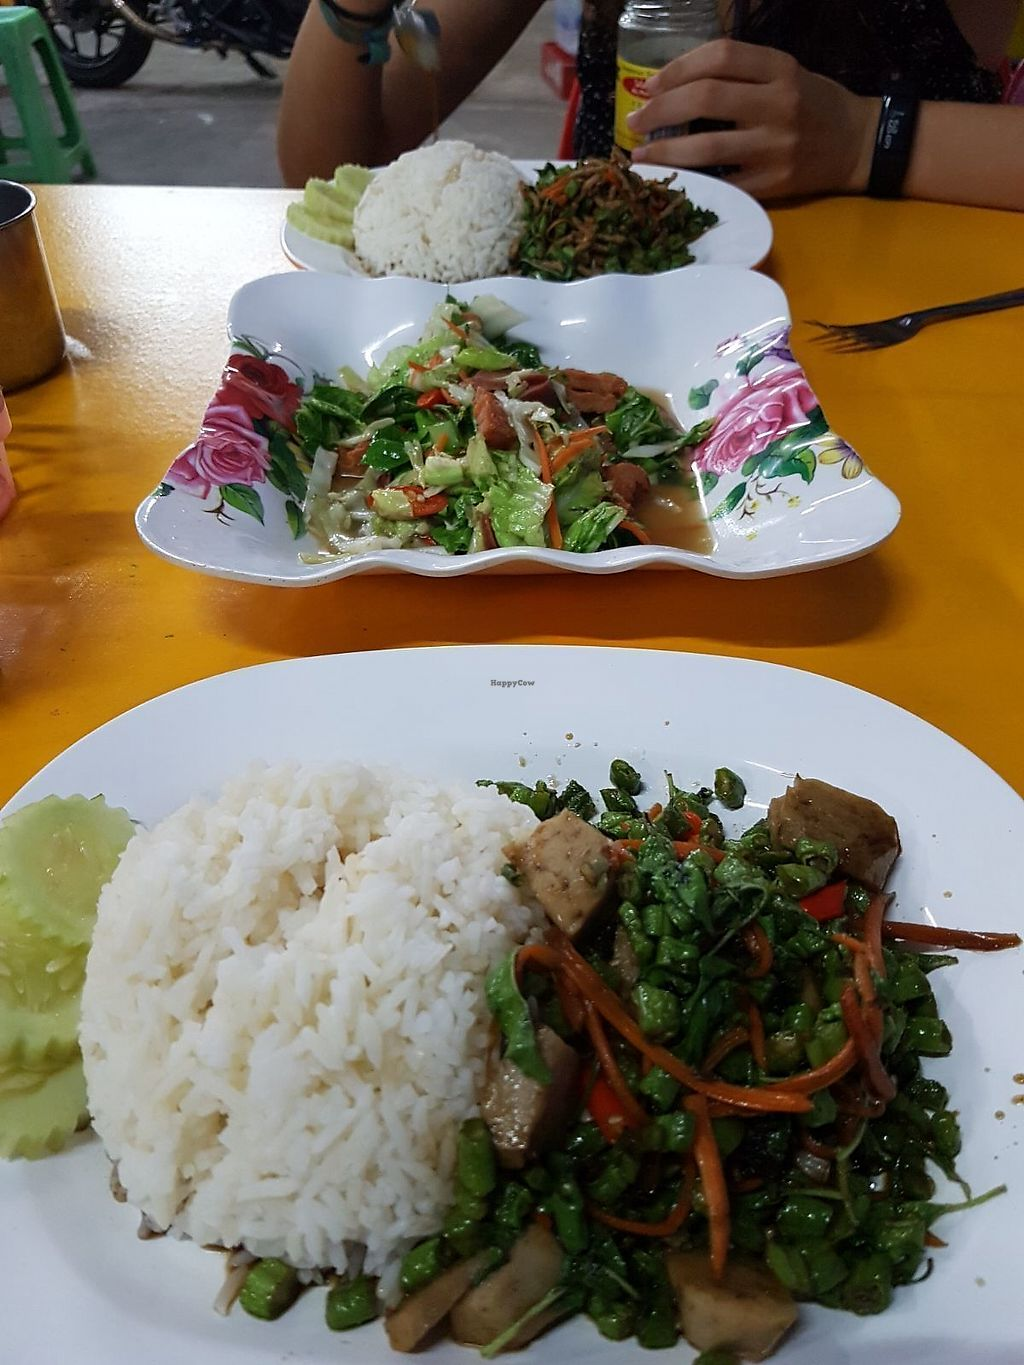 "Photo of Nong Jay  by <a href=""/members/profile/vegatleticas"">vegatleticas</a> <br/>Rice with veggies, mock meat and salad <br/> February 22, 2018  - <a href='/contact/abuse/image/35860/362303'>Report</a>"